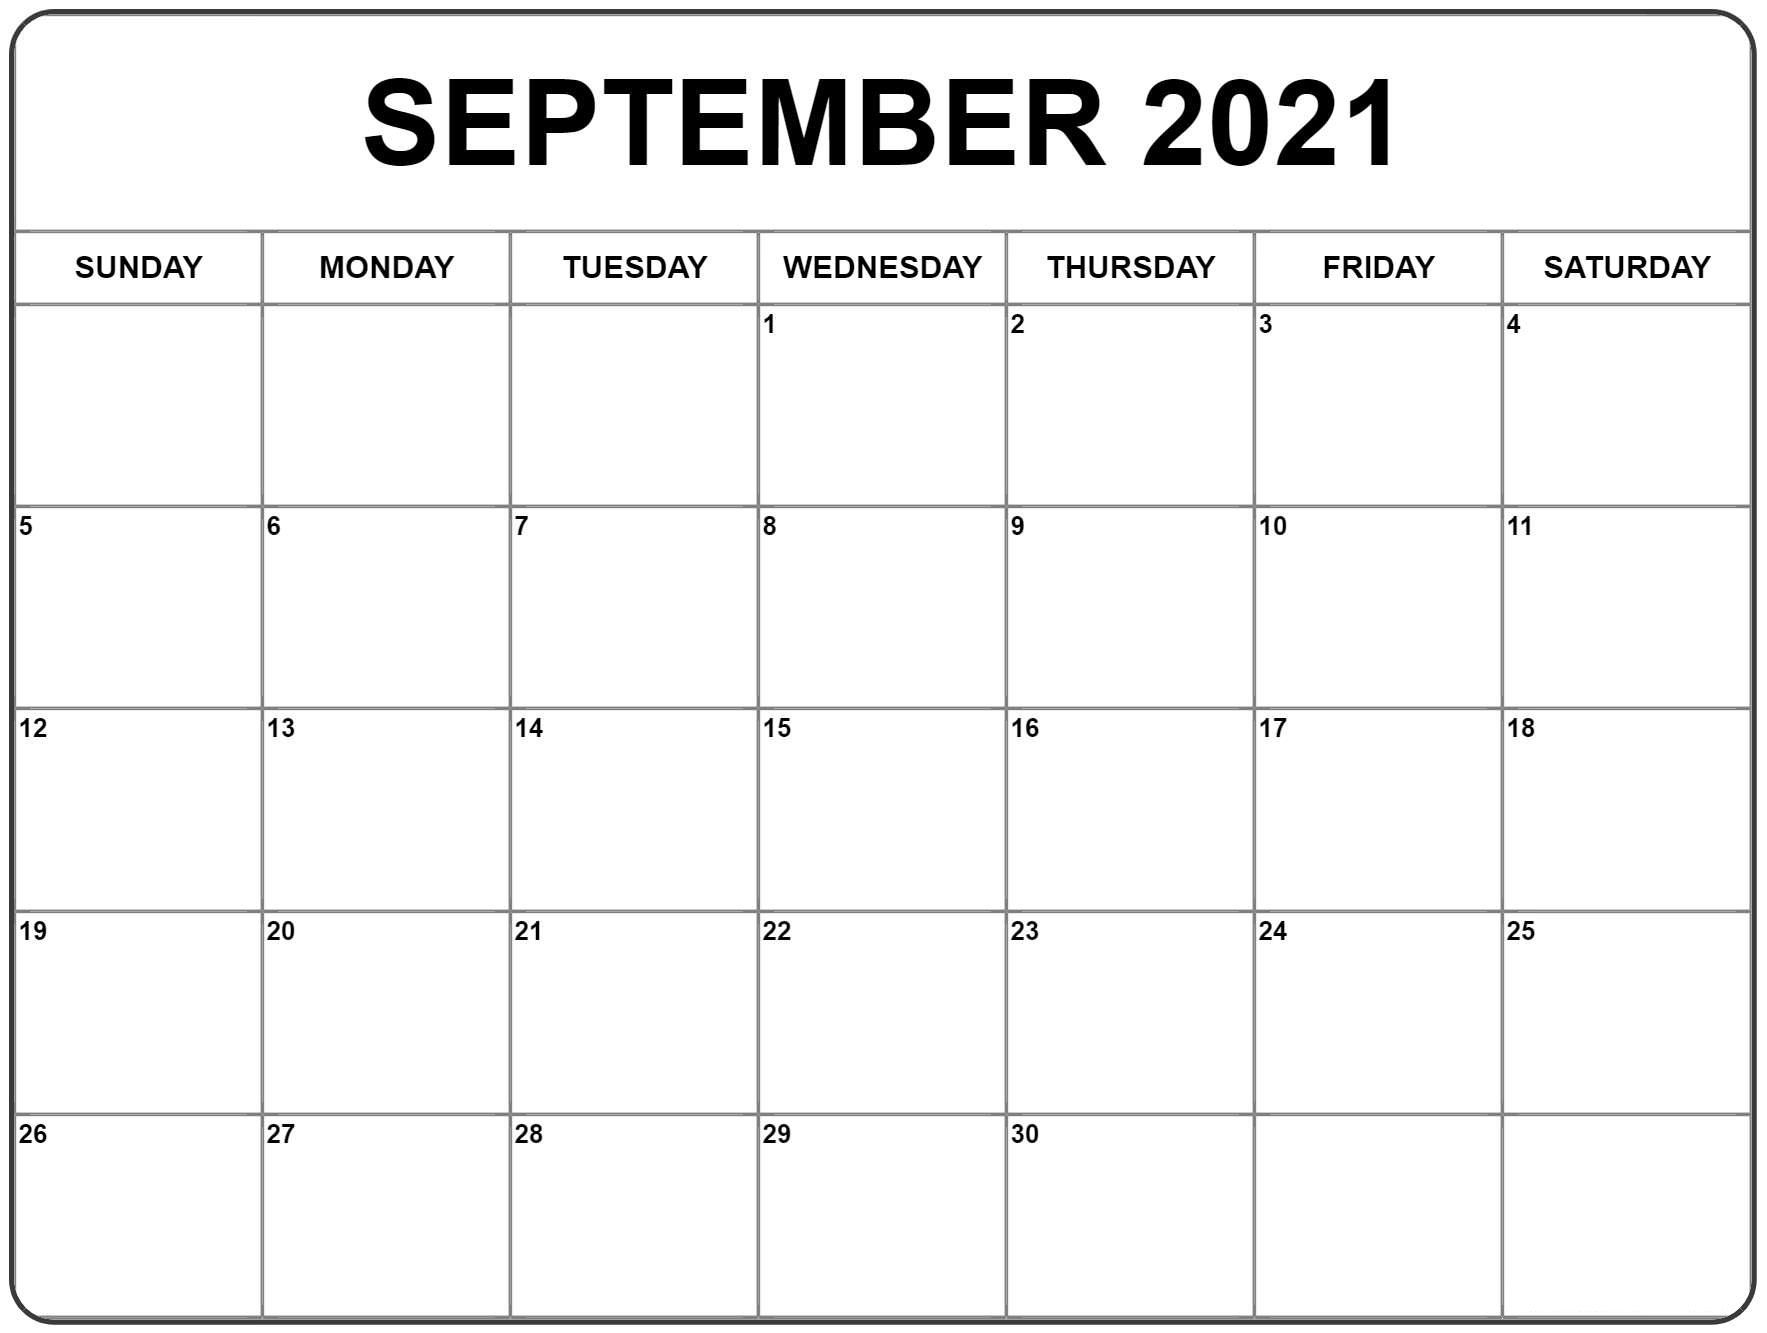 September 2021 Calendar | Monthly Calendar Printable, Blank